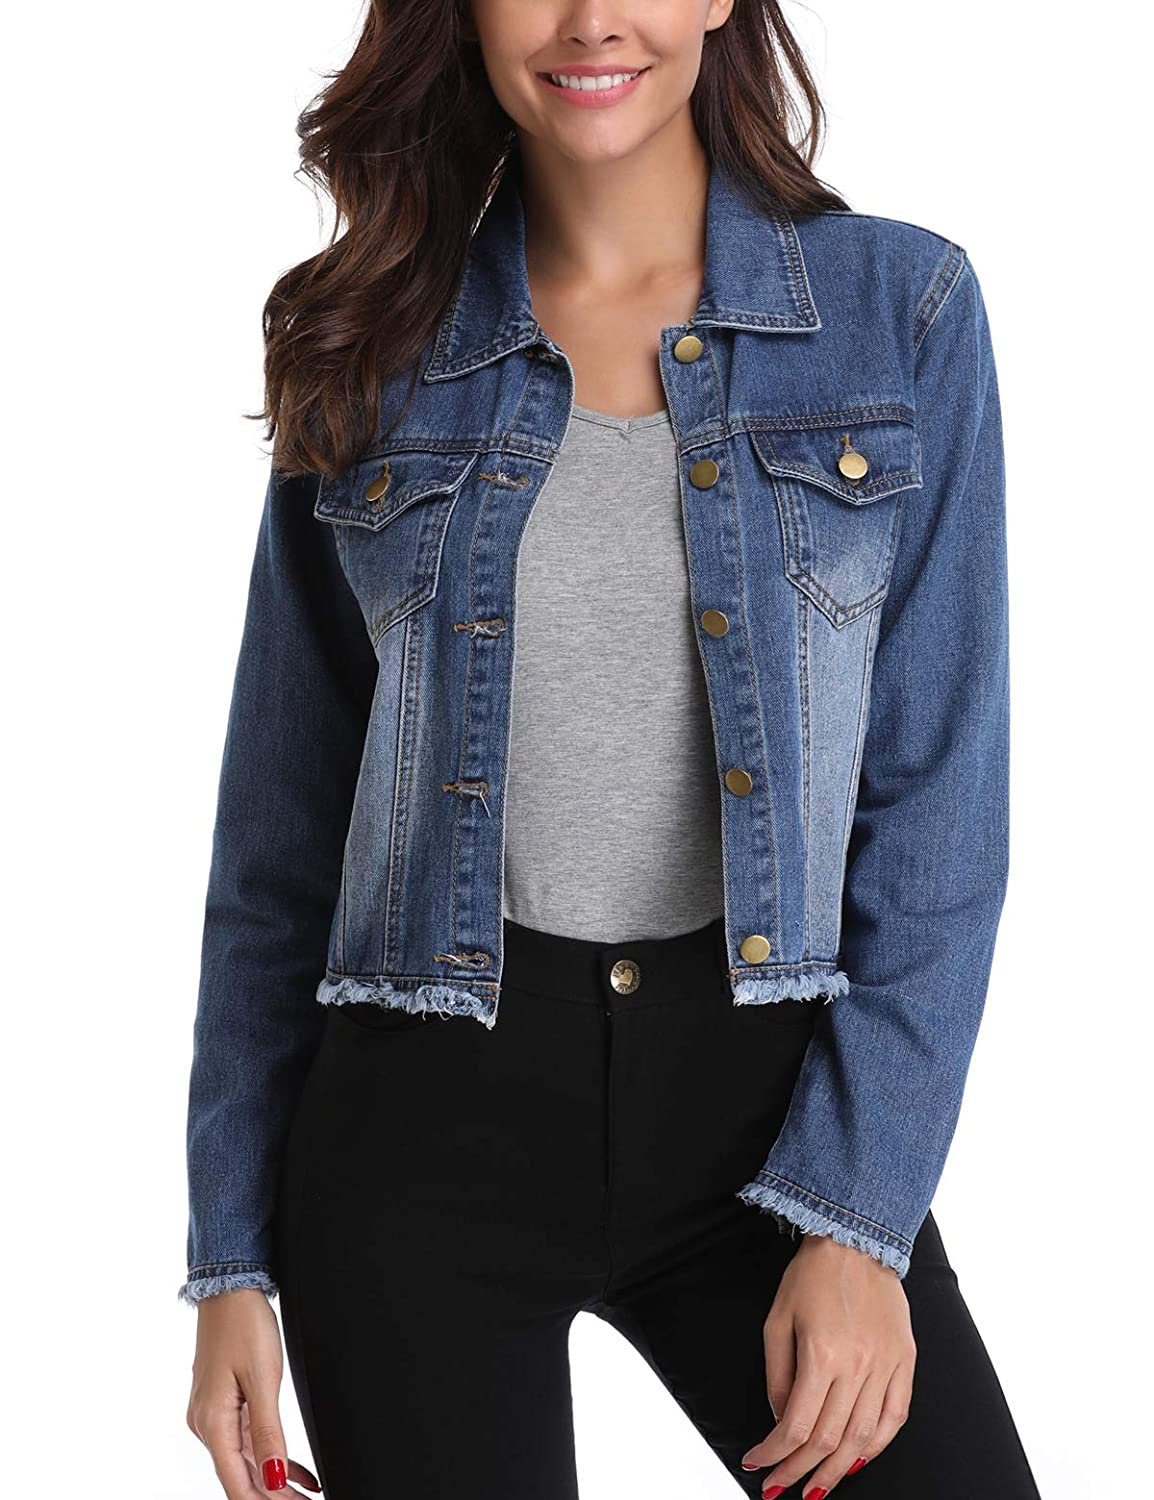 MISS MOLY Womens Jean Jackets Button up Turn Down Collar Frayed Denim Washed Crop Coat Warm in Winter